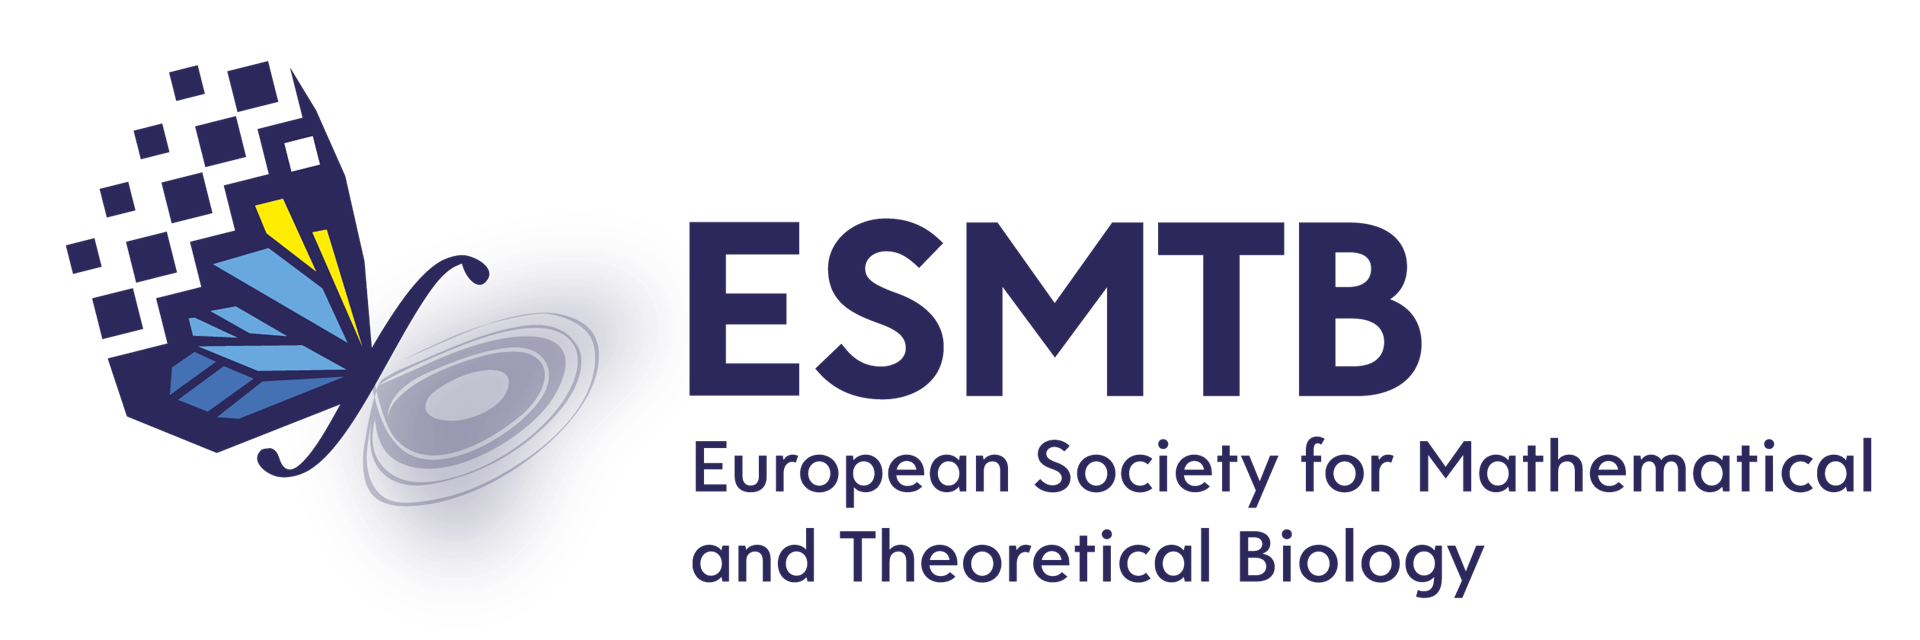 OF THE EUROPEAN MATHEMATICAL SOCIETY